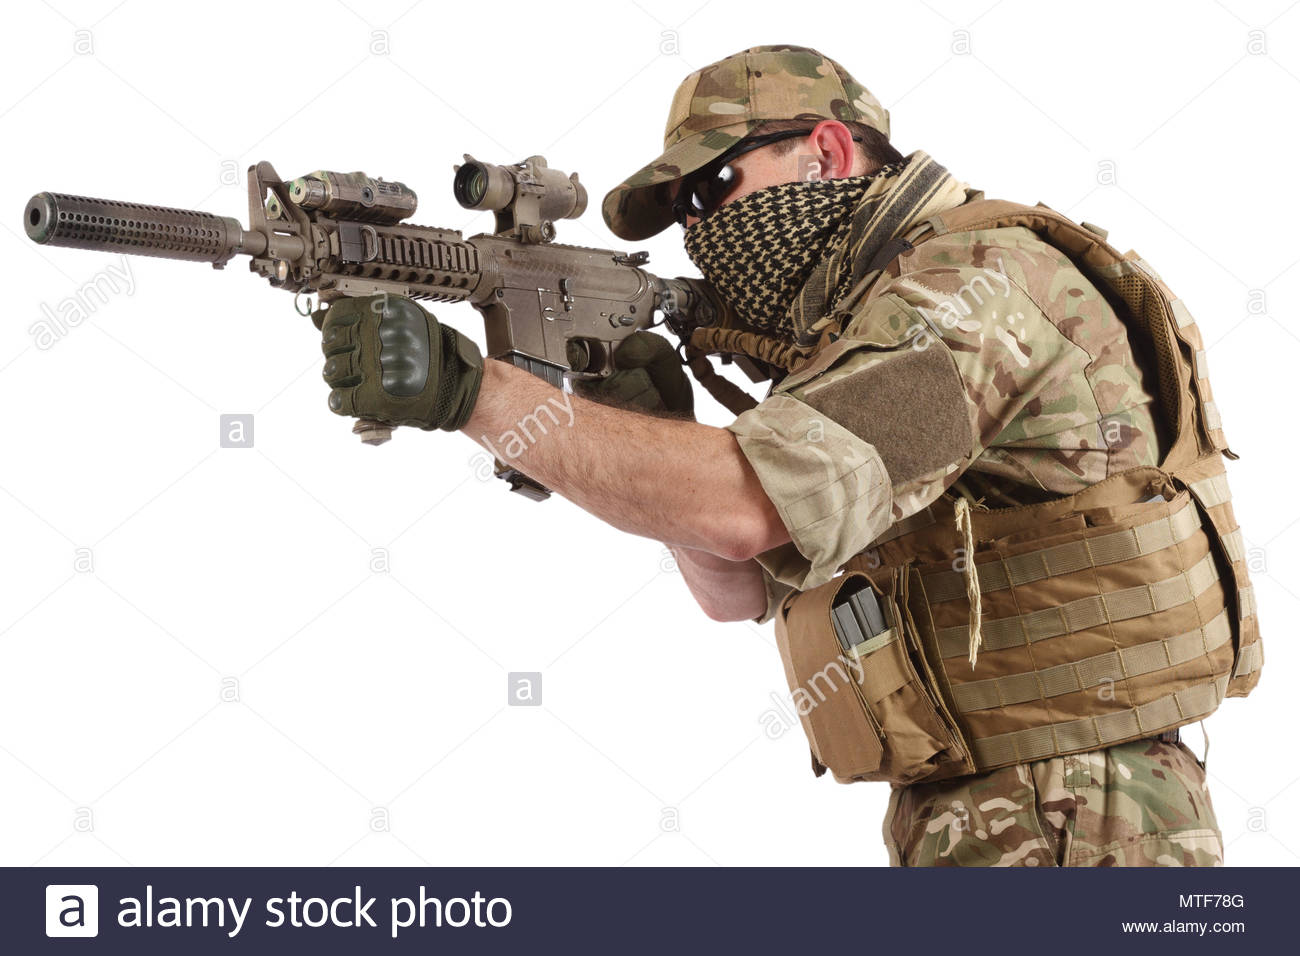 Private Military Company operator with assault rifle on white 1300x956